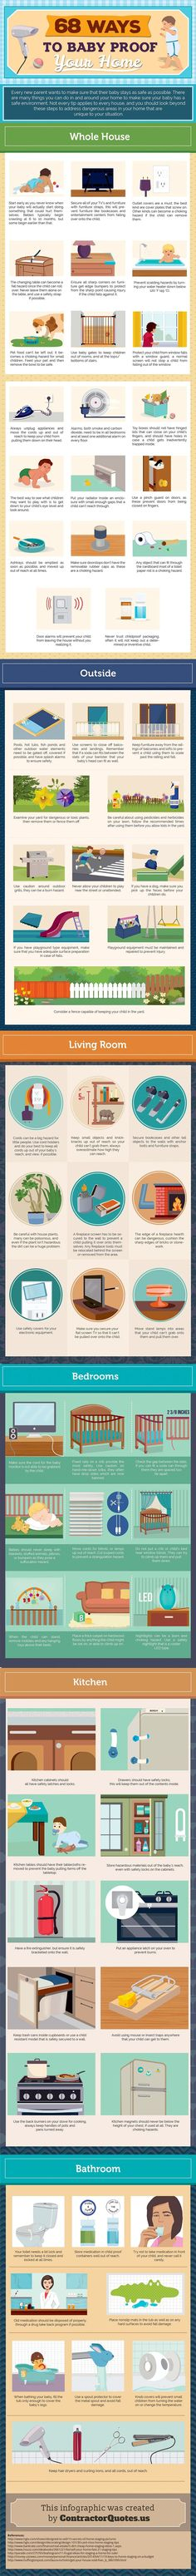 Baby raising tips: How to Baby-Proof Your Home; Make your house safe for your infant with these tips for your living rooms, kitchen, bedrooms, yard, and Baby Bedroom, Baby Boy Rooms, Baby Care Tips, Baby Safety, Fire Safety, Child Safety, Family Safety, Safety Tips, Baby Development